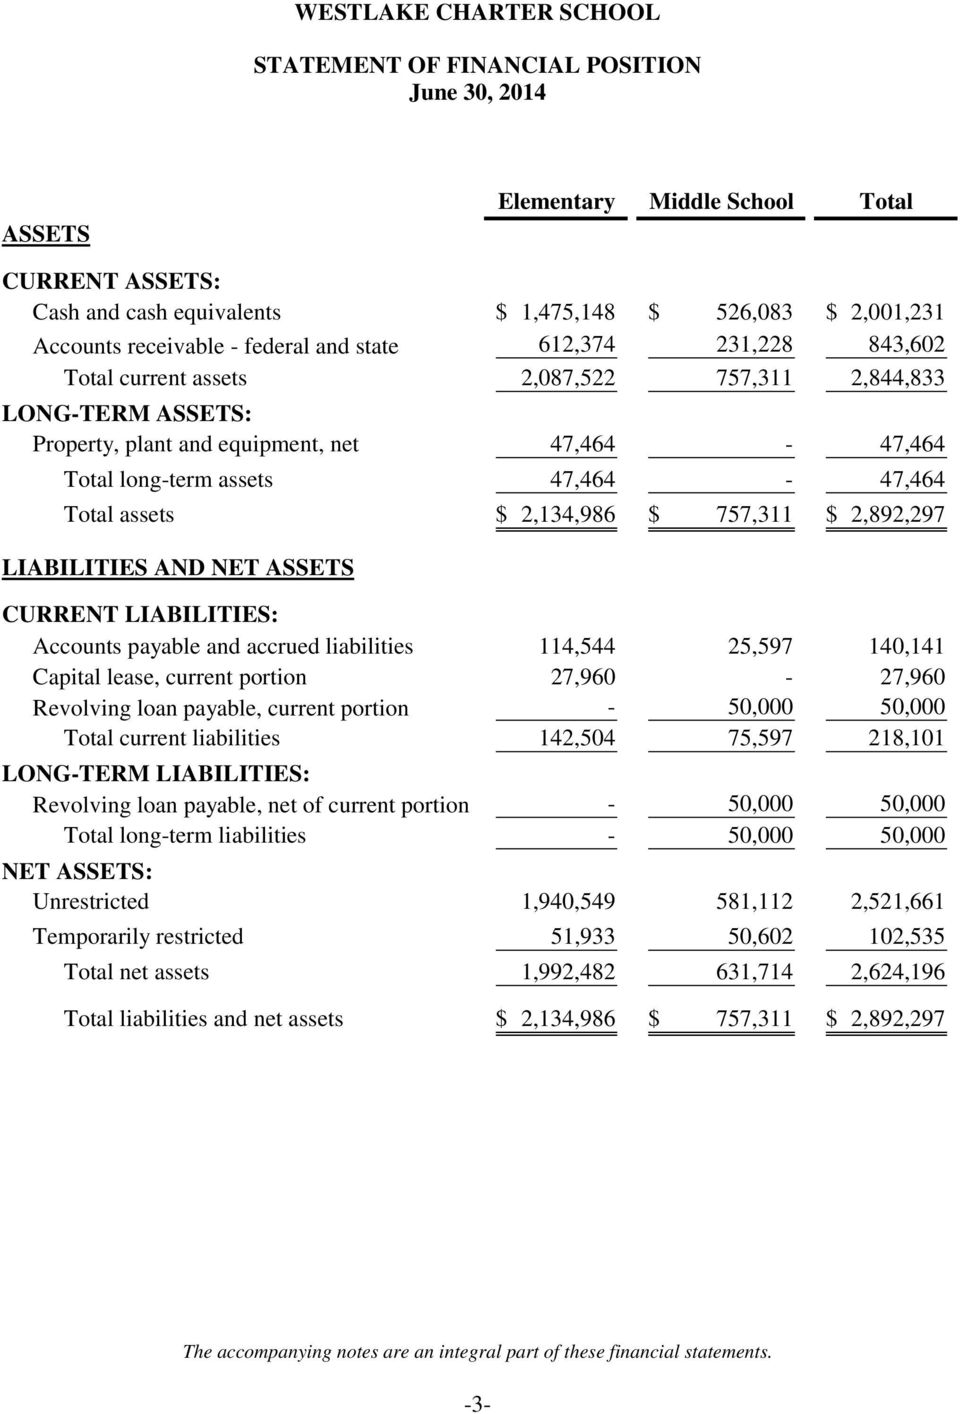 2,134,986 $ 757,311 $ 2,892,297 LIABILITIES AND NET ASSETS CURRENT LIABILITIES: Accounts payable and accrued liabilities 114,544 25,597 140,141 Capital lease, current portion 27,960-27,960 Revolving